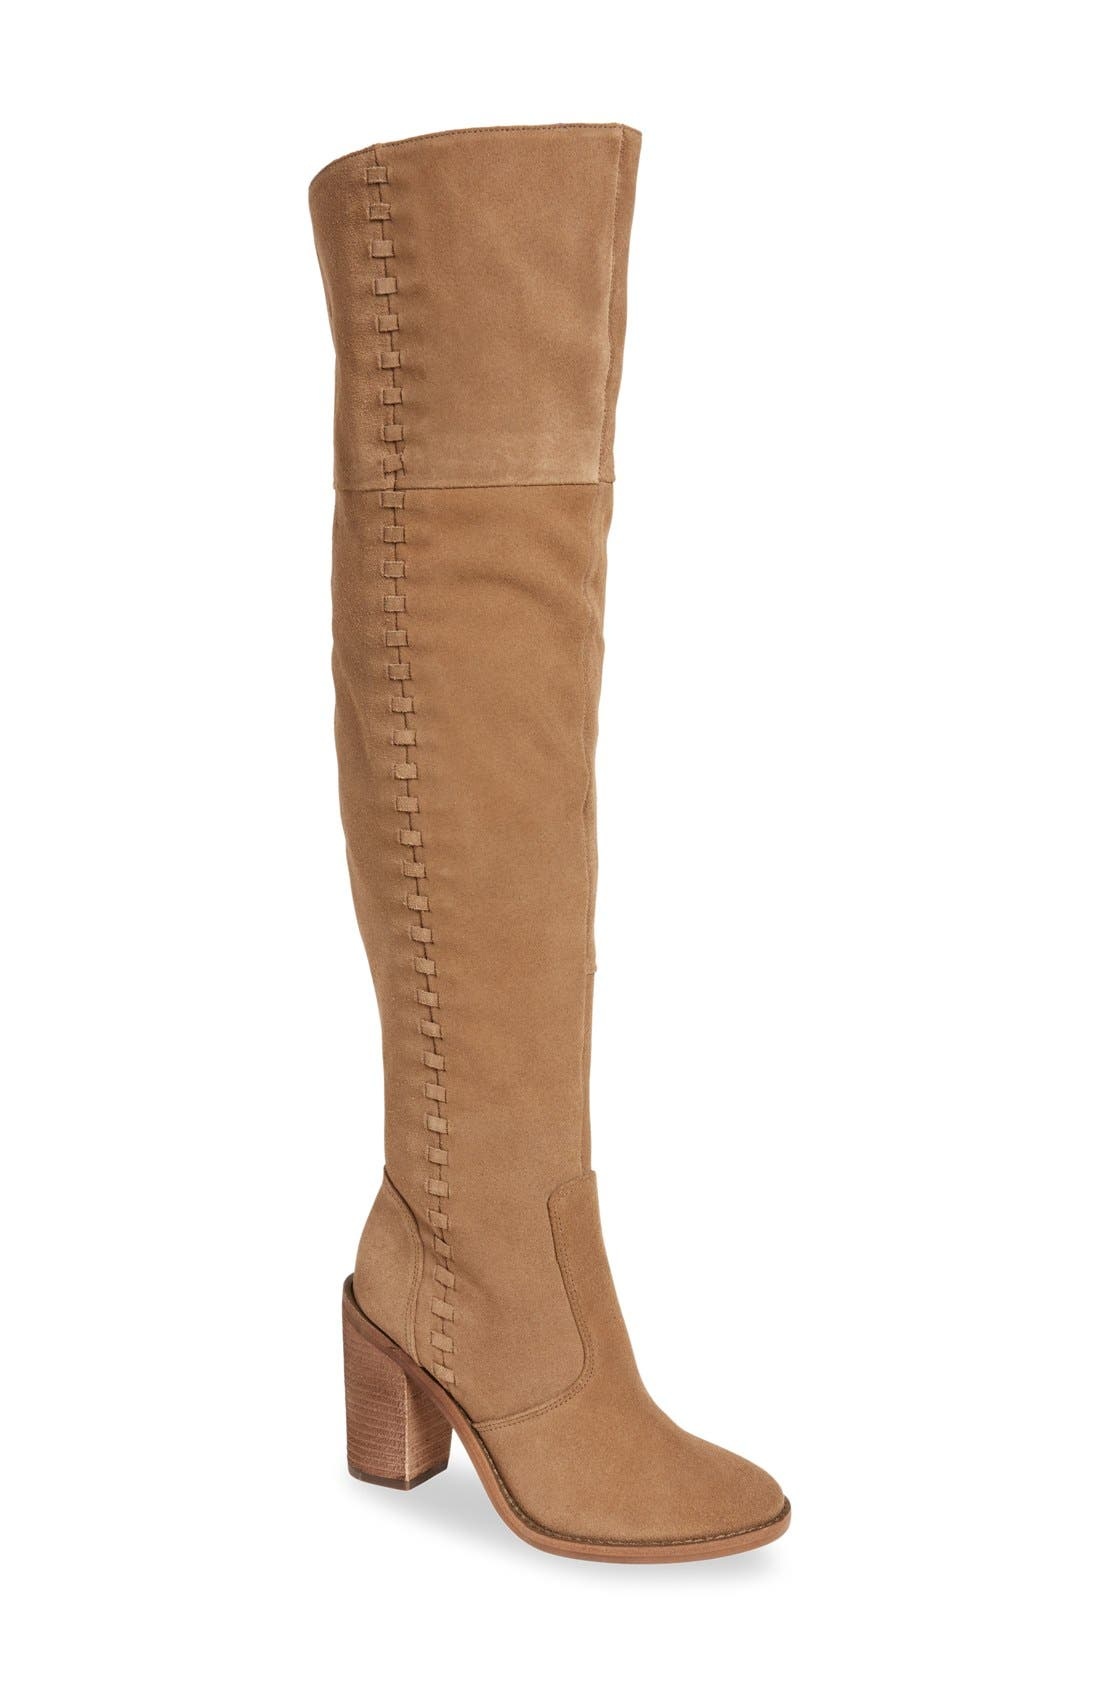 Alternate Image 1 Selected - Vince Camuto 'Morra' Over the Knee Boot (Women)